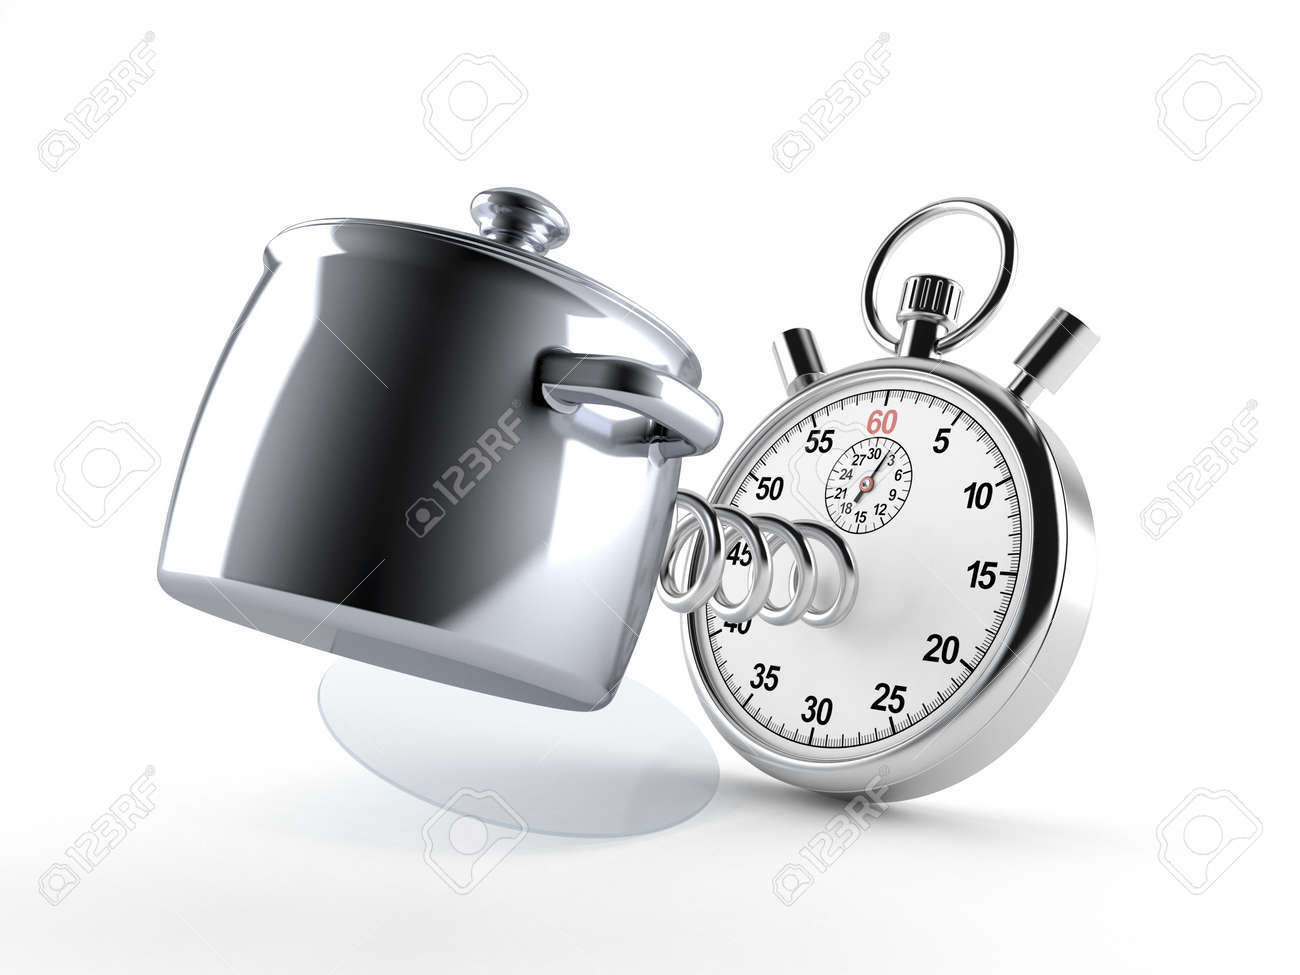 Kitchen pot with stopwatch isolated on white background. 3d illustration - 138436999